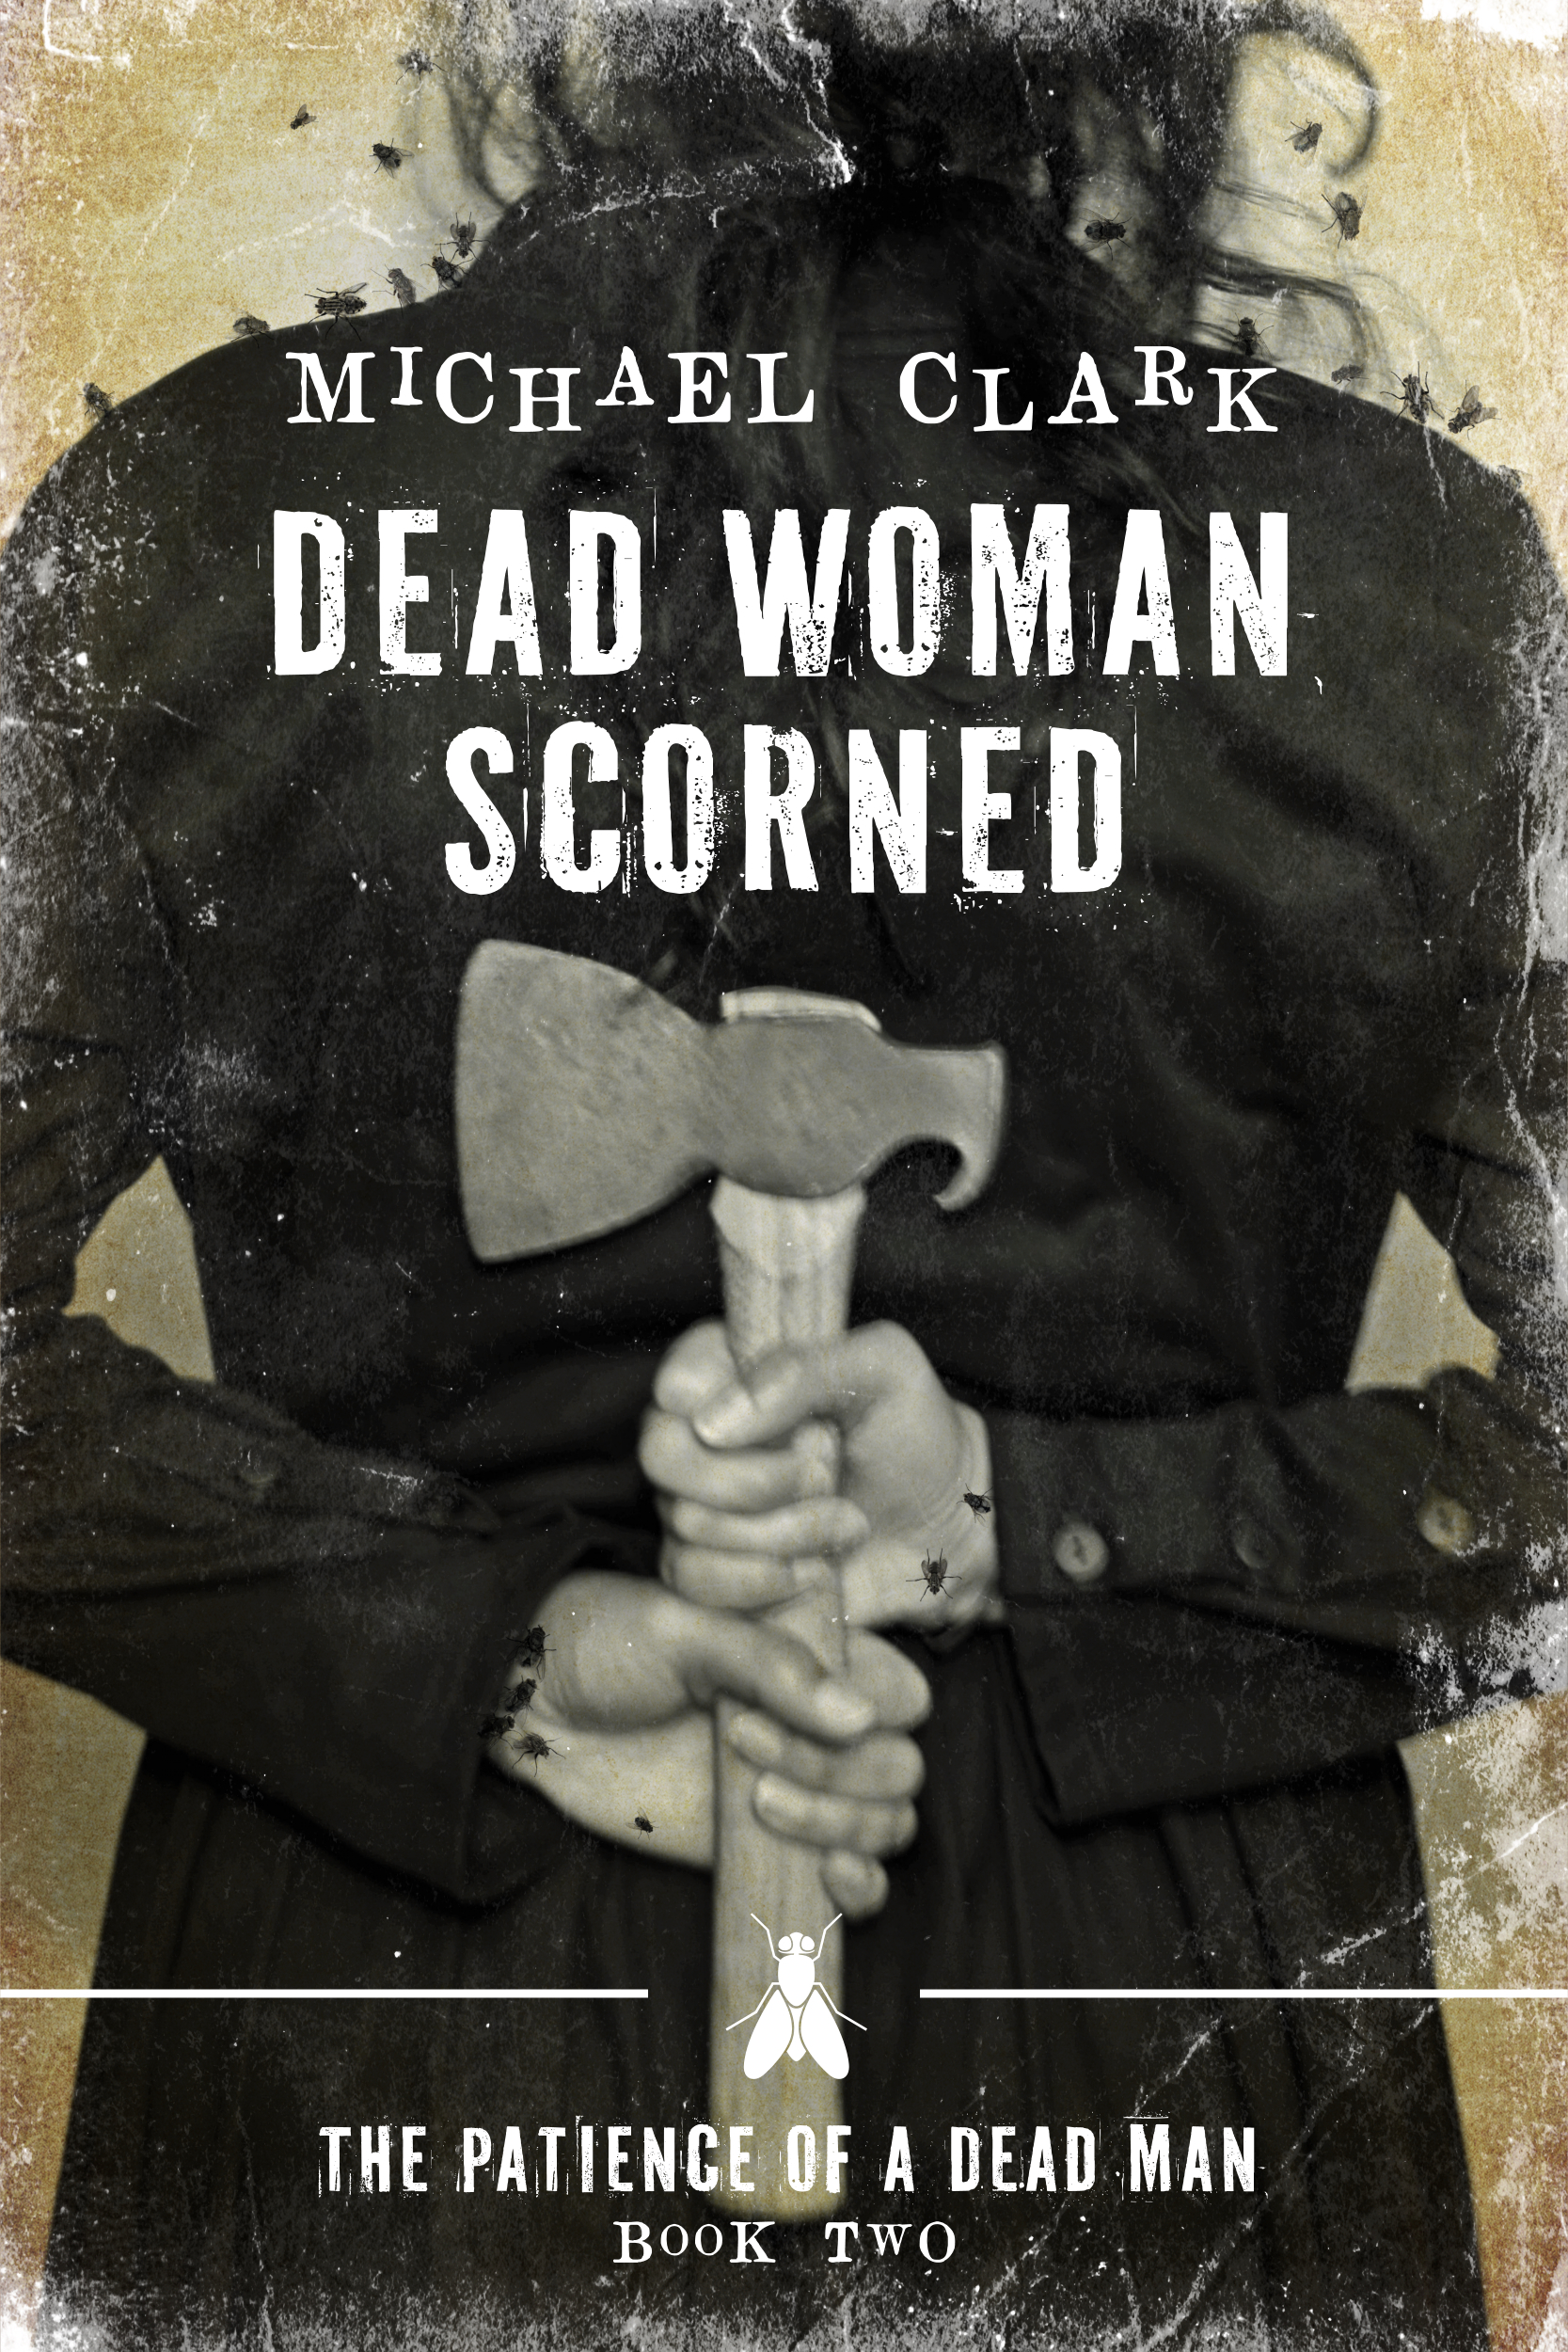 Dead Woman Scorned by Michael Clark @MikeClarkBooks @Damppebbles #BookReview #BlogTour